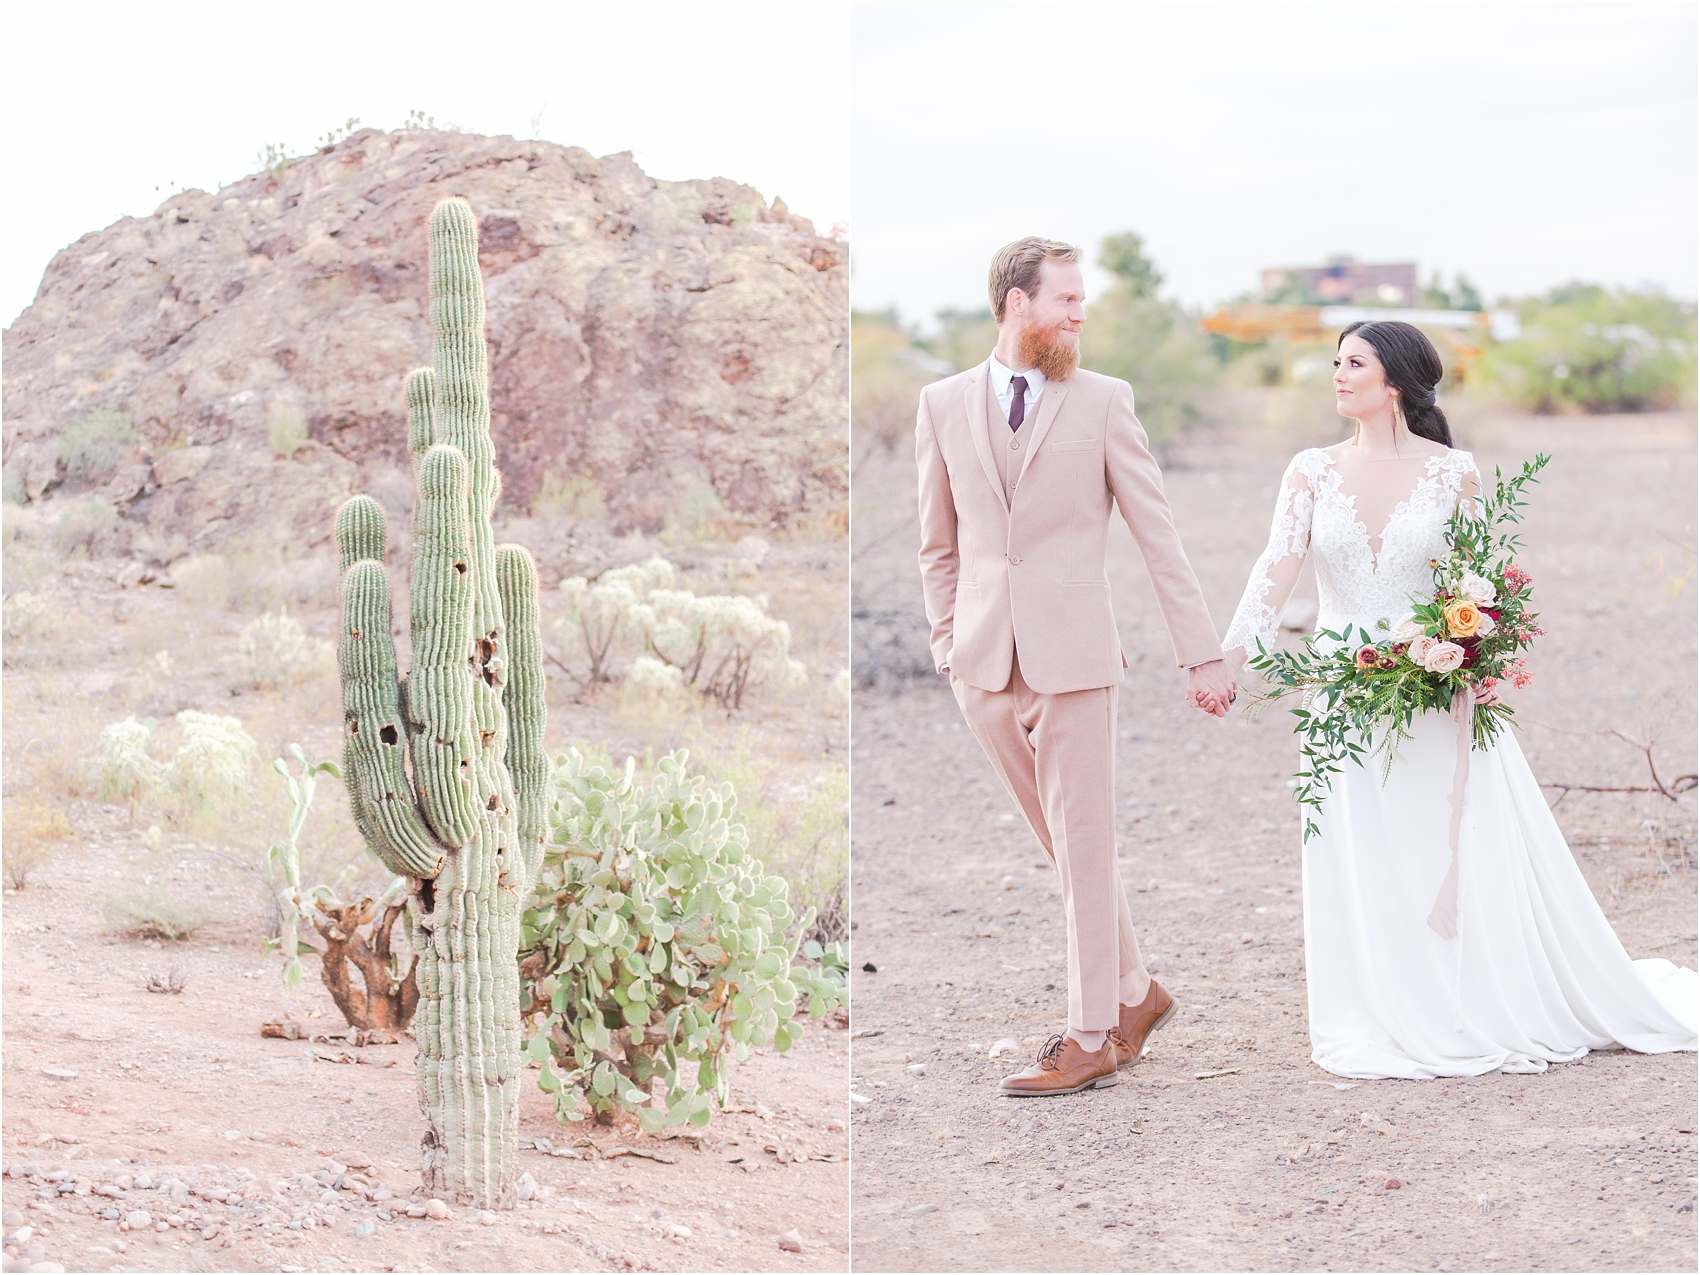 intimate-and-romantic-desert-wedding-photos-at-phoenix-marriott-tempe-at-the-buttes-in-tempe-arizona-by-courtney-carolyn-photography_0022.jpg